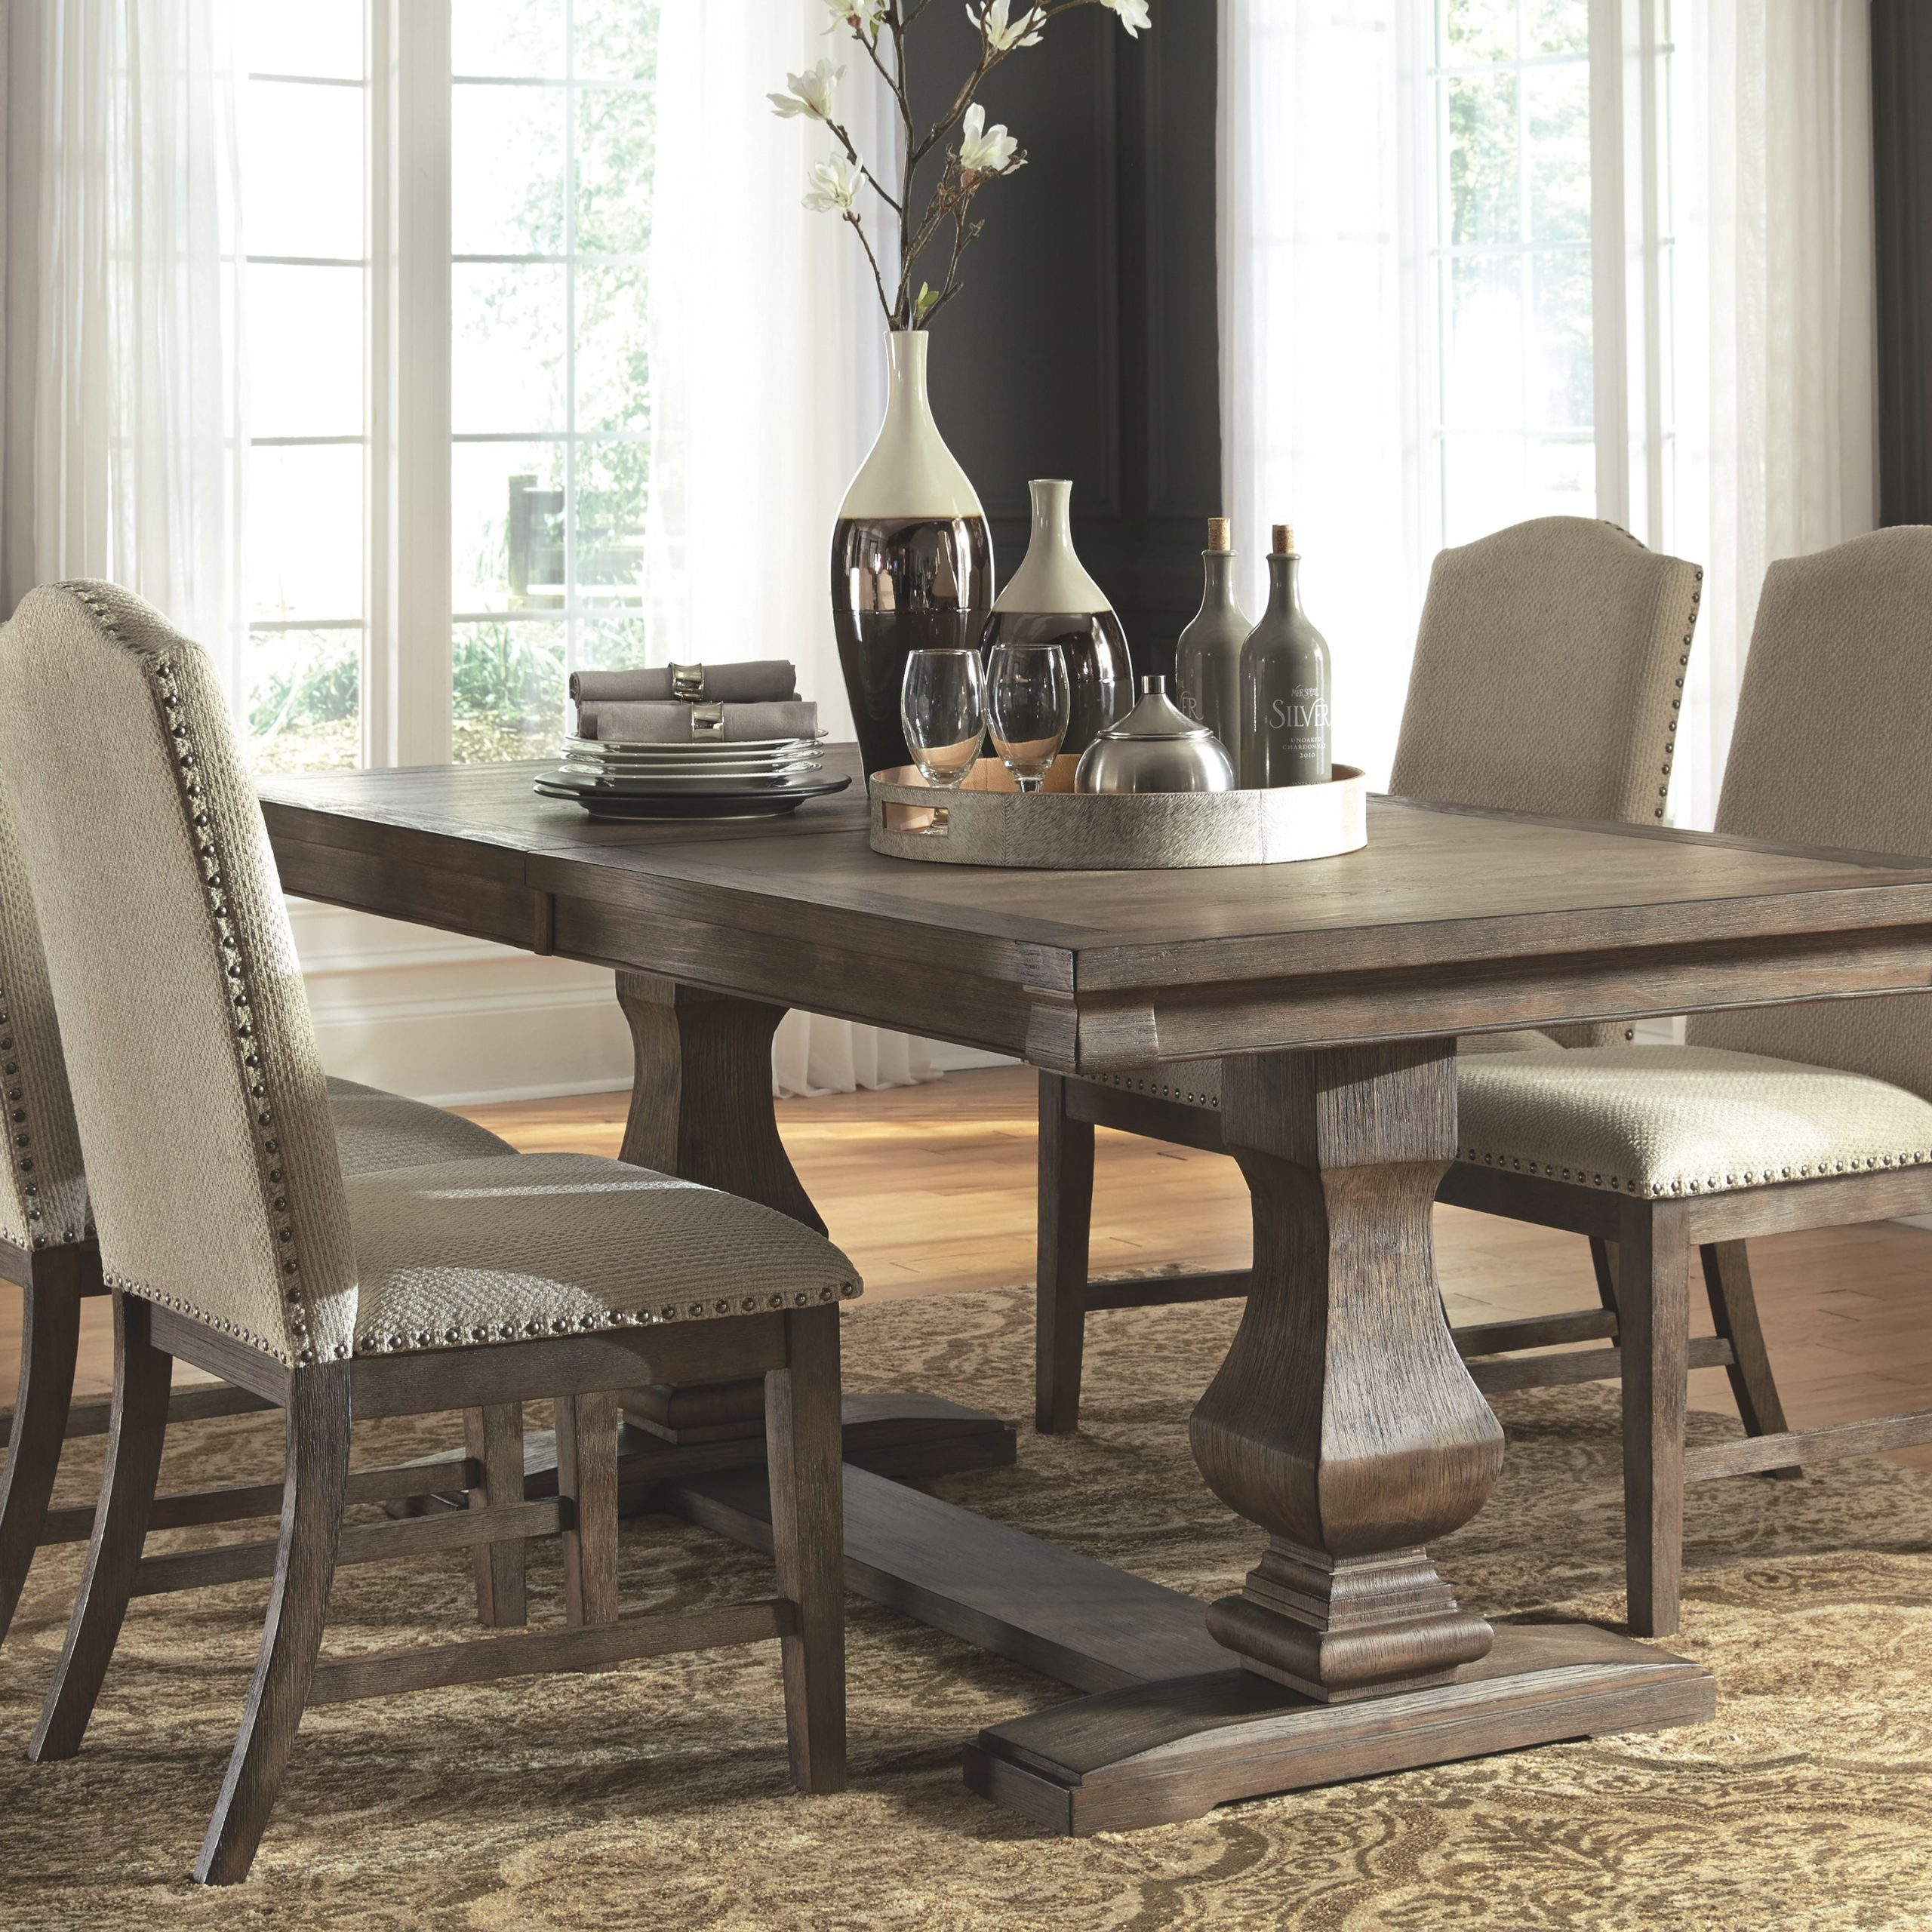 Johnelle 5 Piece Dining Room, Gray In 2019 | Dining Room For Most Popular Gray Wash Lorraine Extending Dining Tables (View 3 of 25)